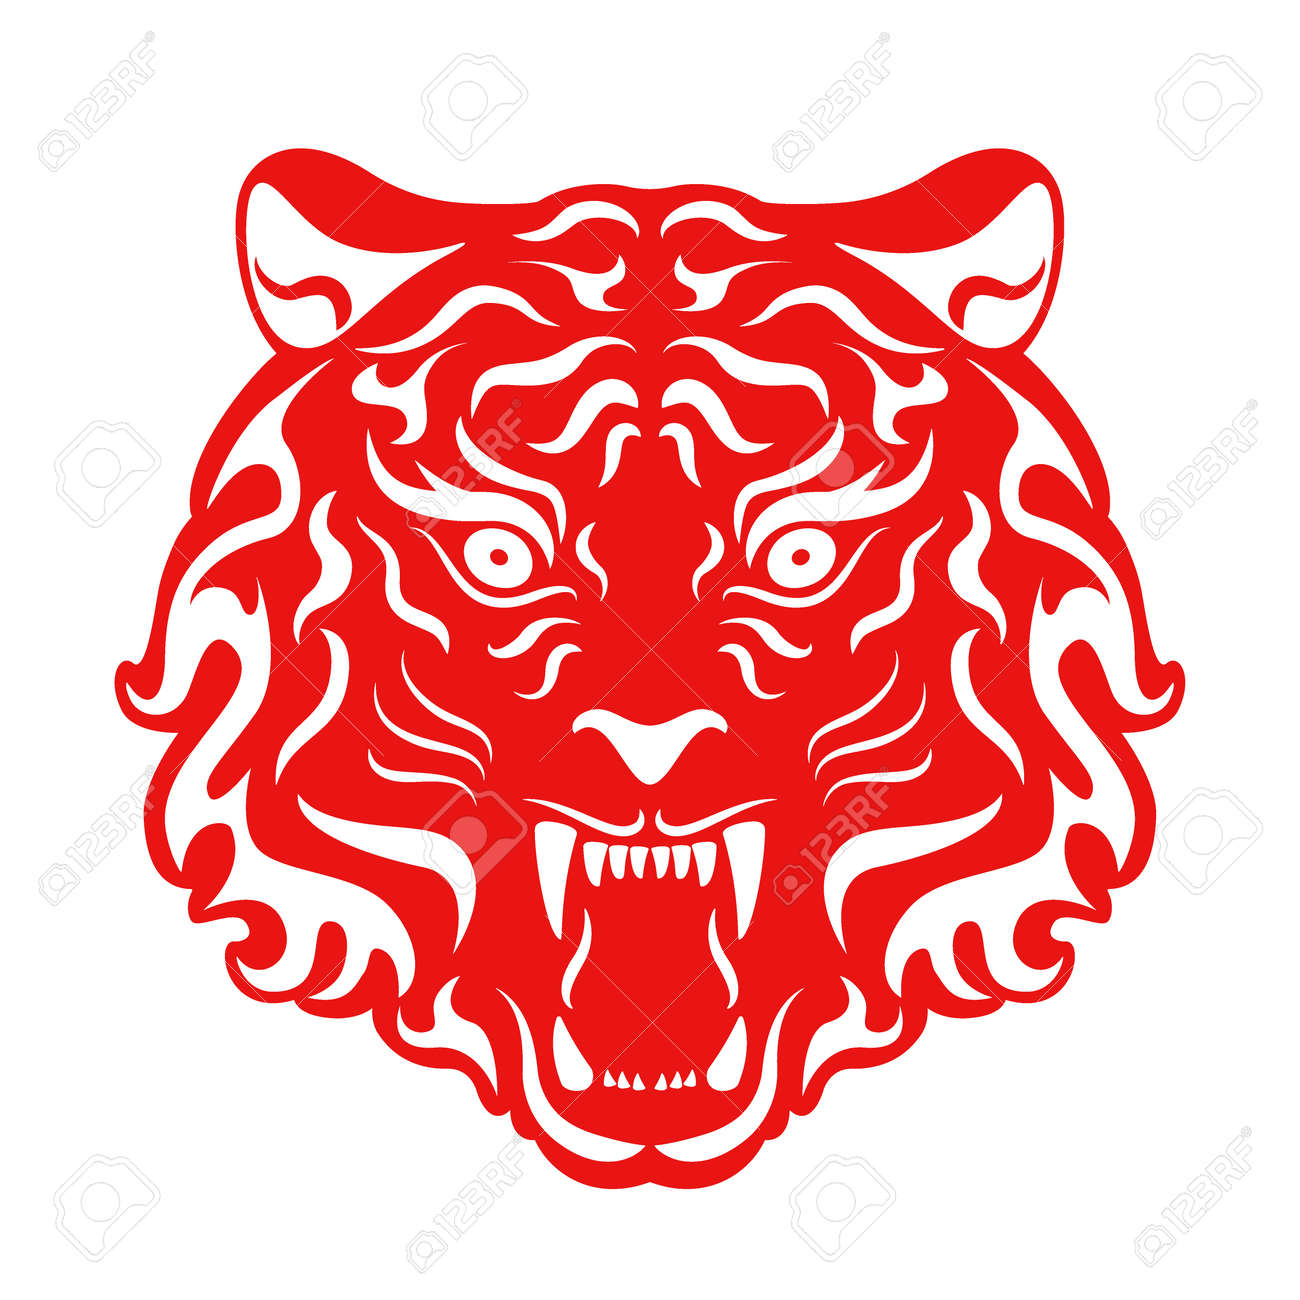 Tiger Roaring Head. Stylized Vector illustration of a Tiger Head. - 168946327